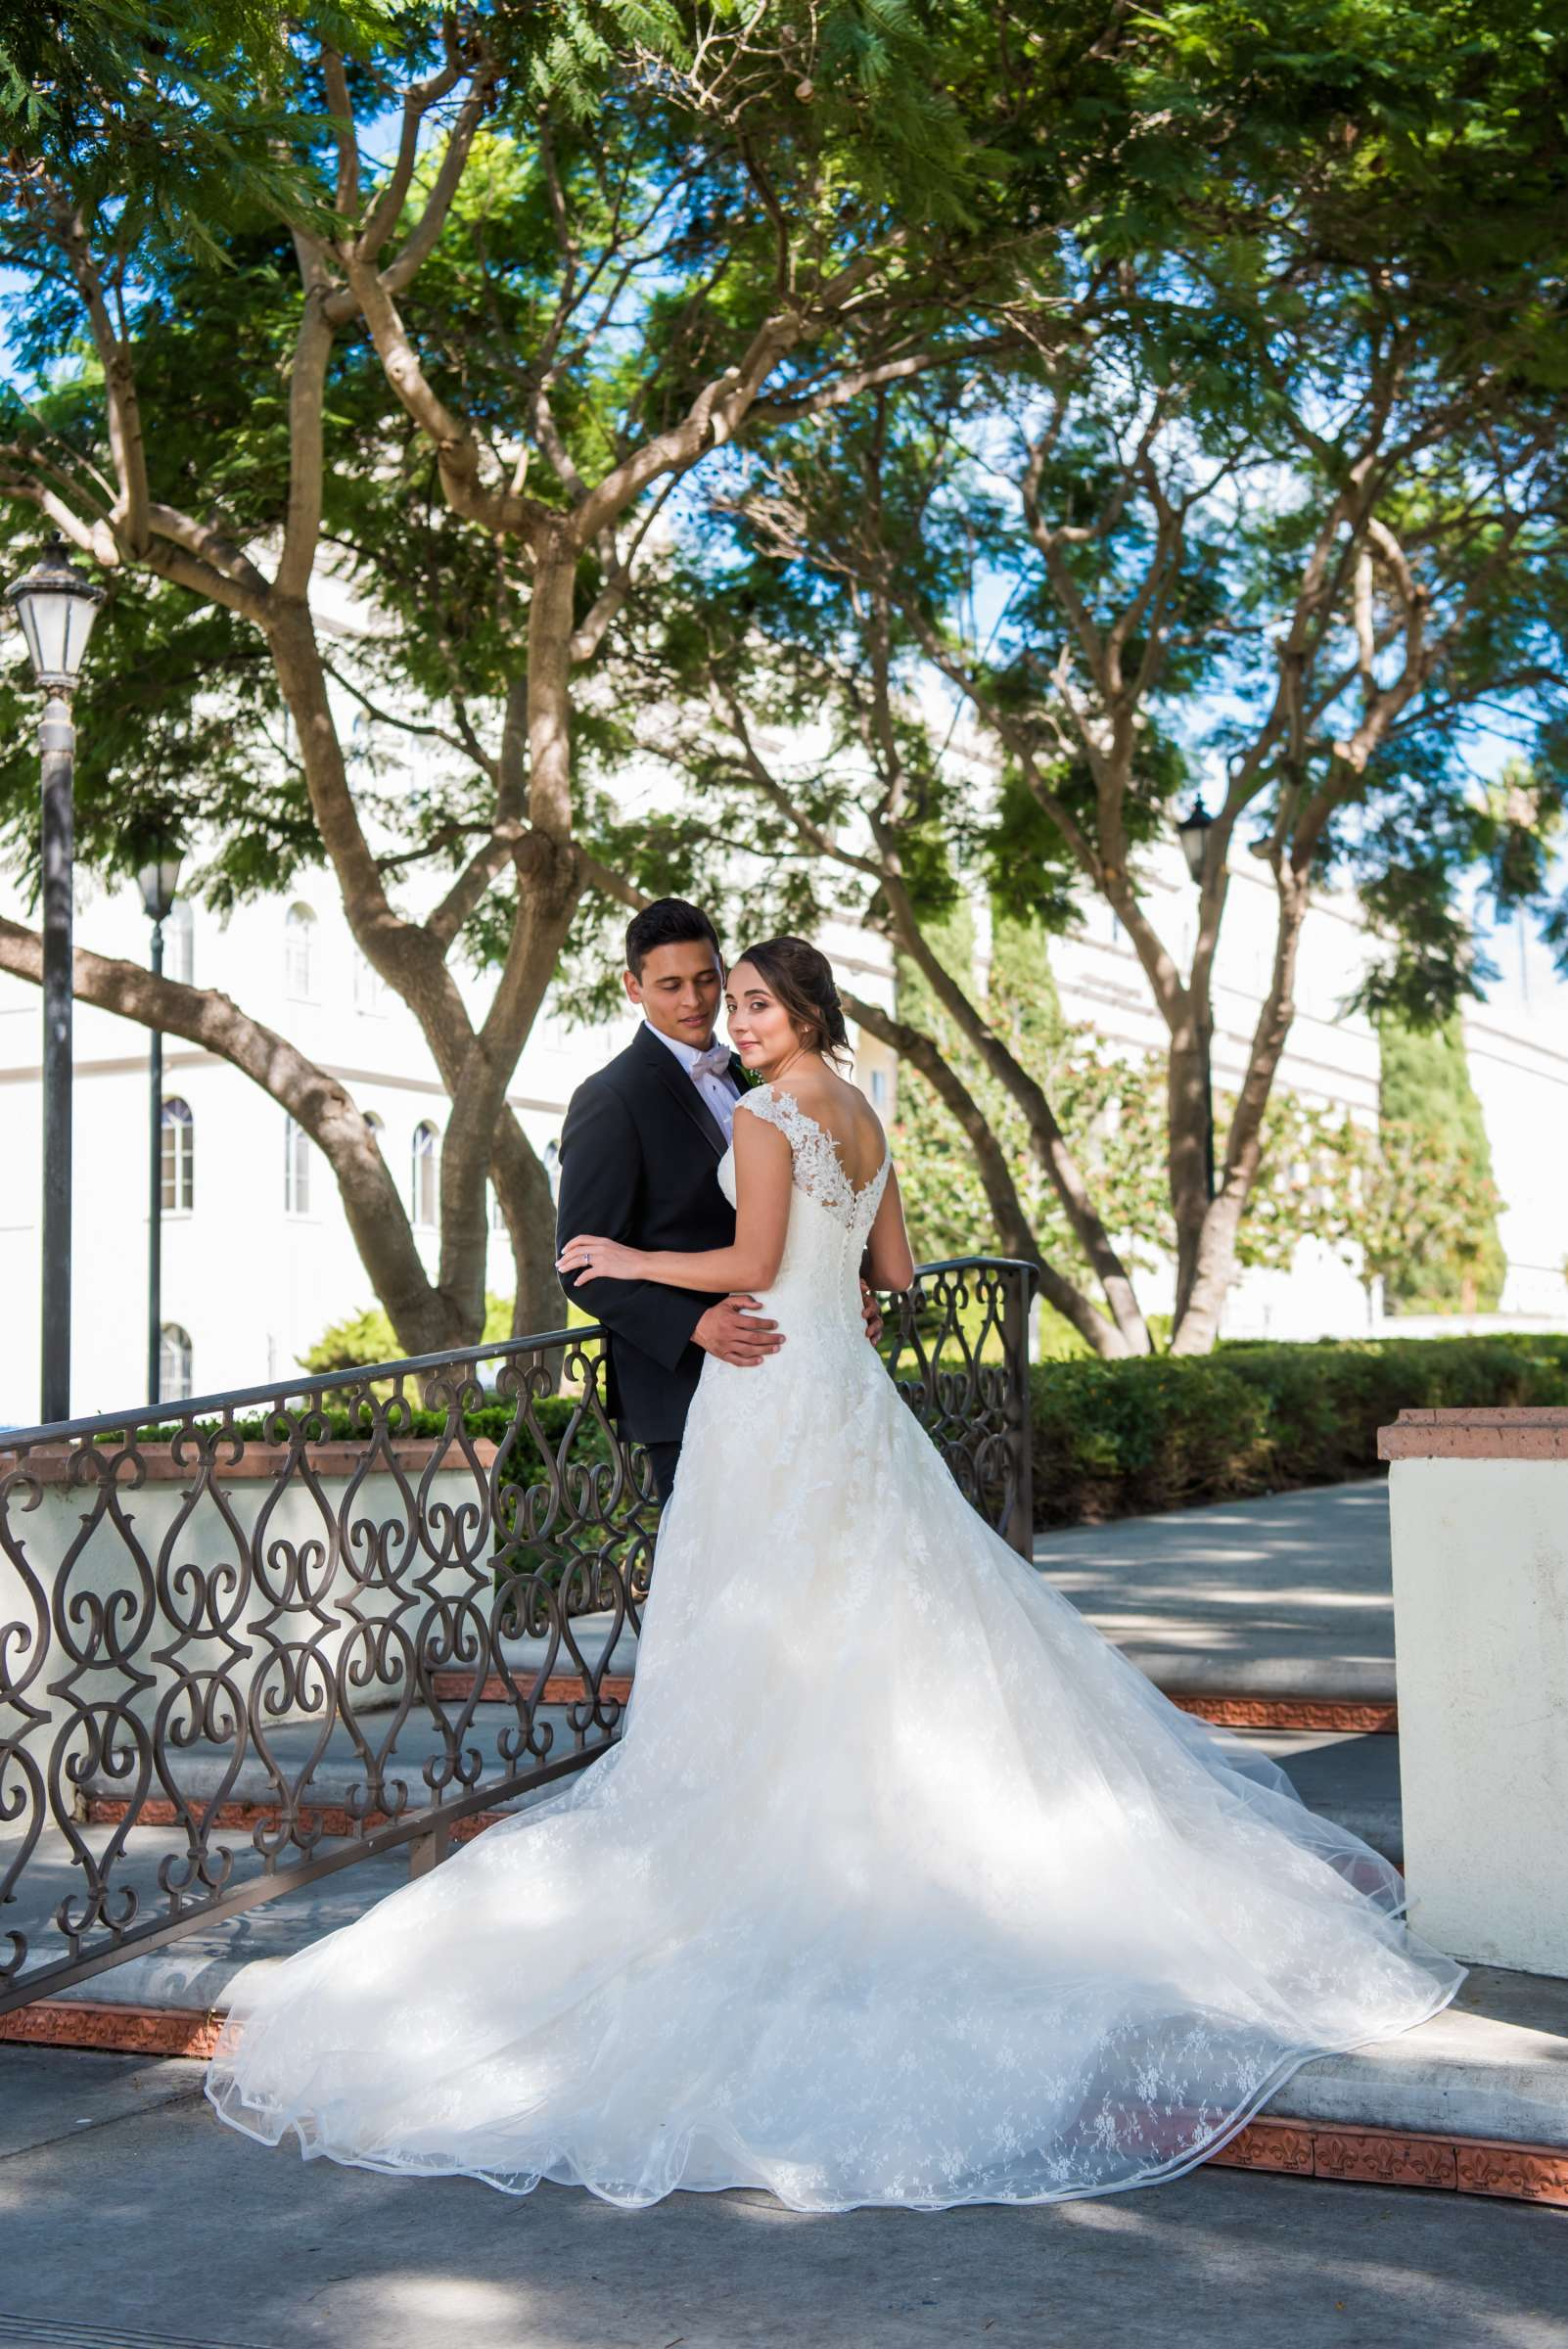 The Immaculata Wedding, Arianna and Jonah Wedding Photo #29 by True Photography